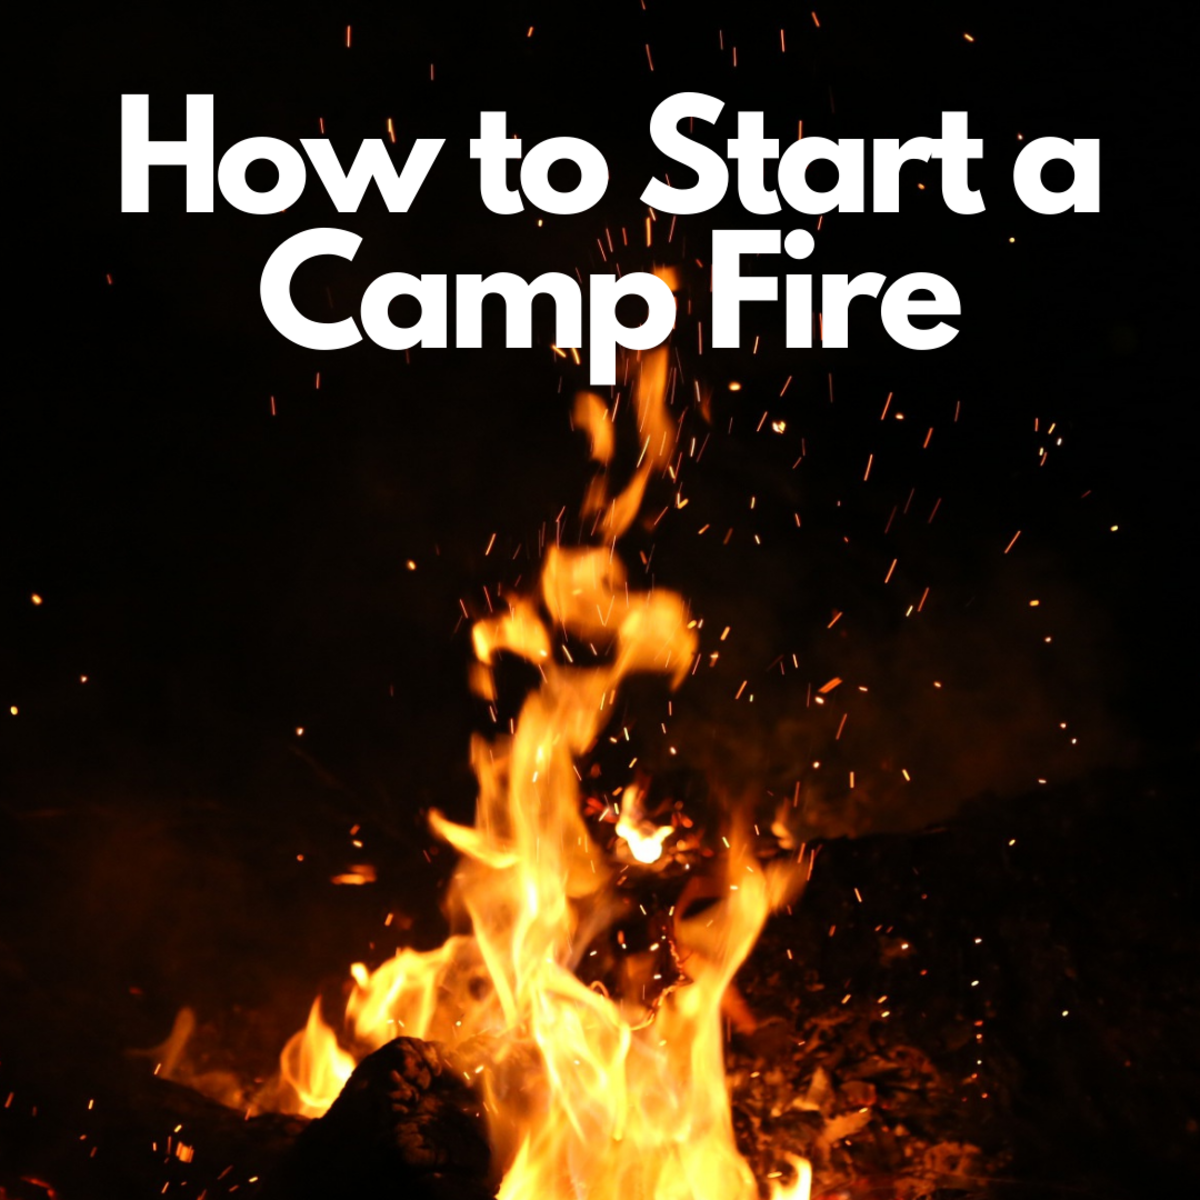 How to Start a Camp Fire